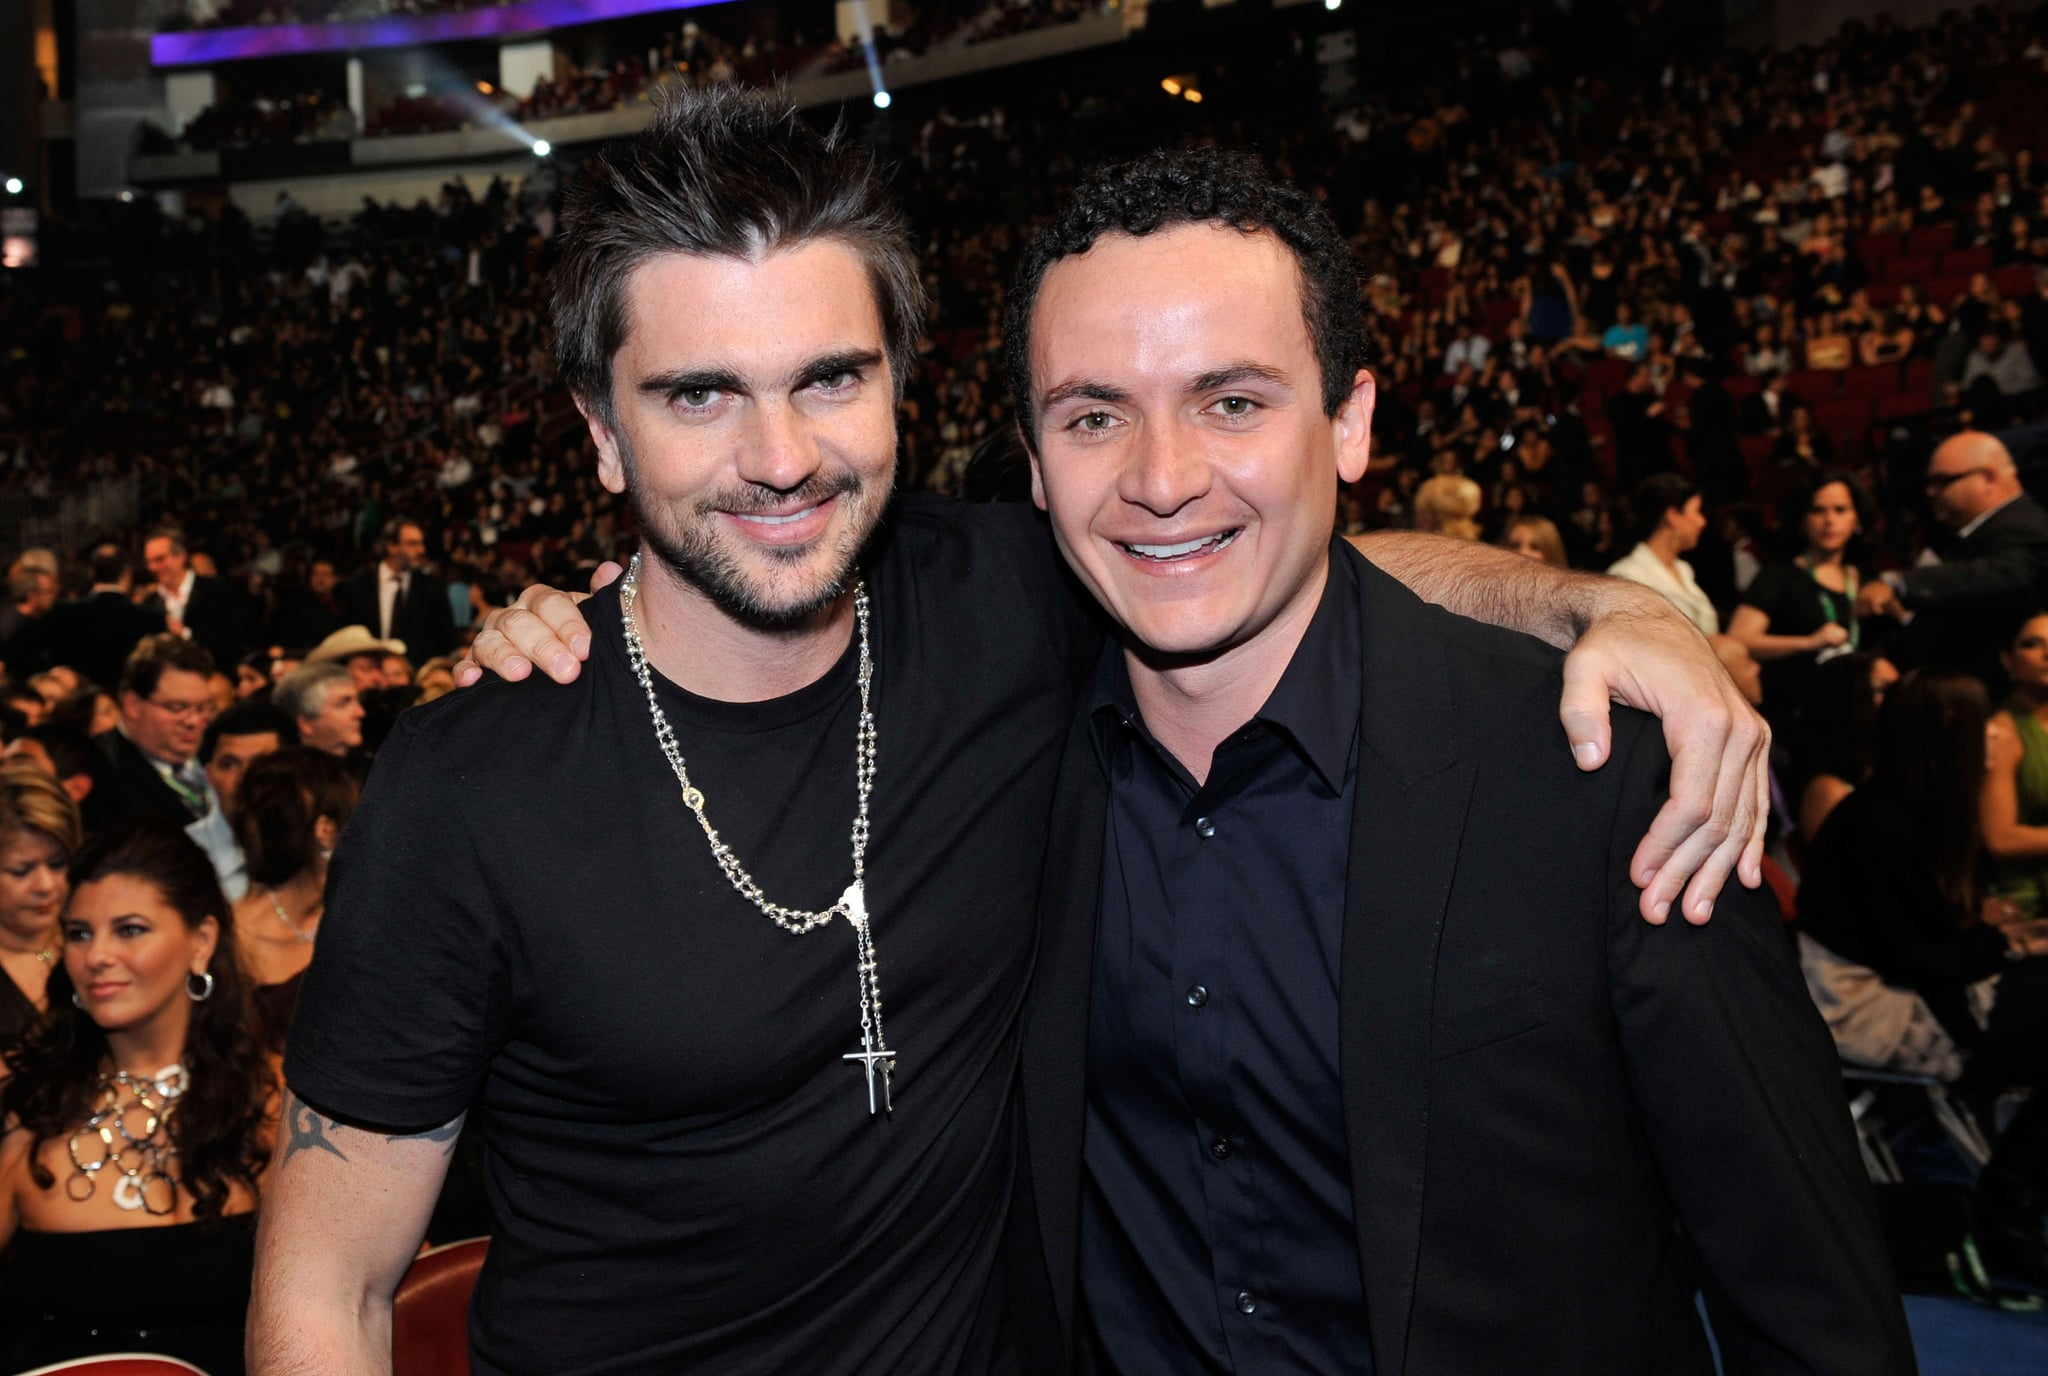 *EXCLUSIVE* Singers Juanes and Fonseca at the 9th Annual Latin GRAMMY Awards held at the Toyota Center on November 13, 2008 in Houston, Texas. ***Exclusive*** (Photo by Rodrigo Varela/WireImage)